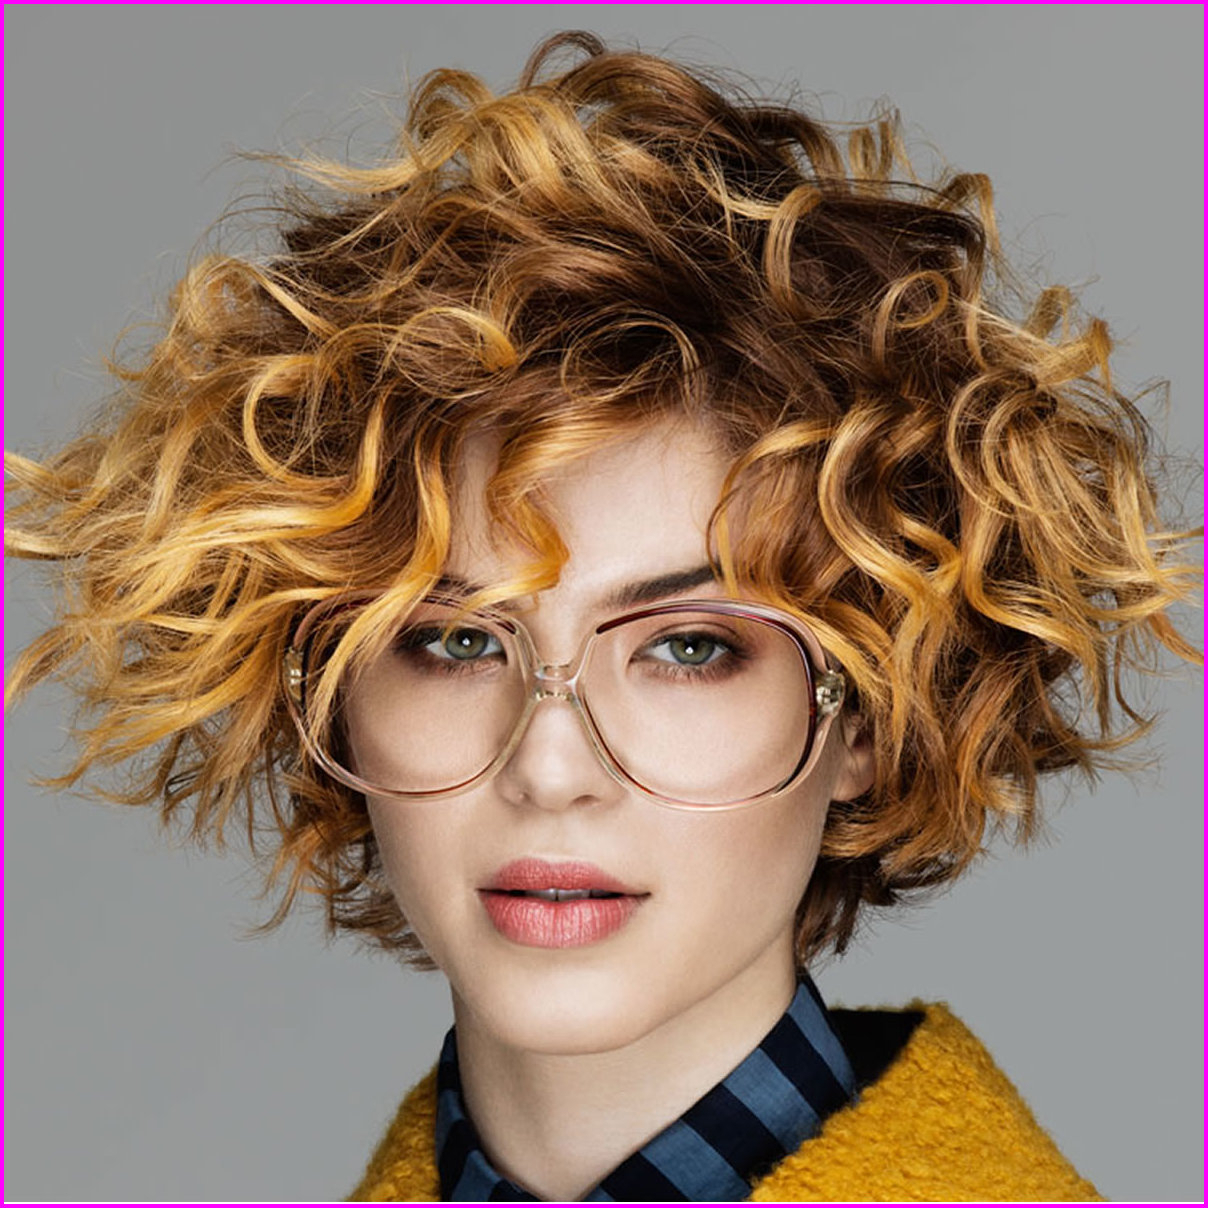 Best Short Haircuts For Curly Hair & Round Face 2019 – Best Short Within Wavy Short Hairstyles For Round Faces (View 15 of 25)